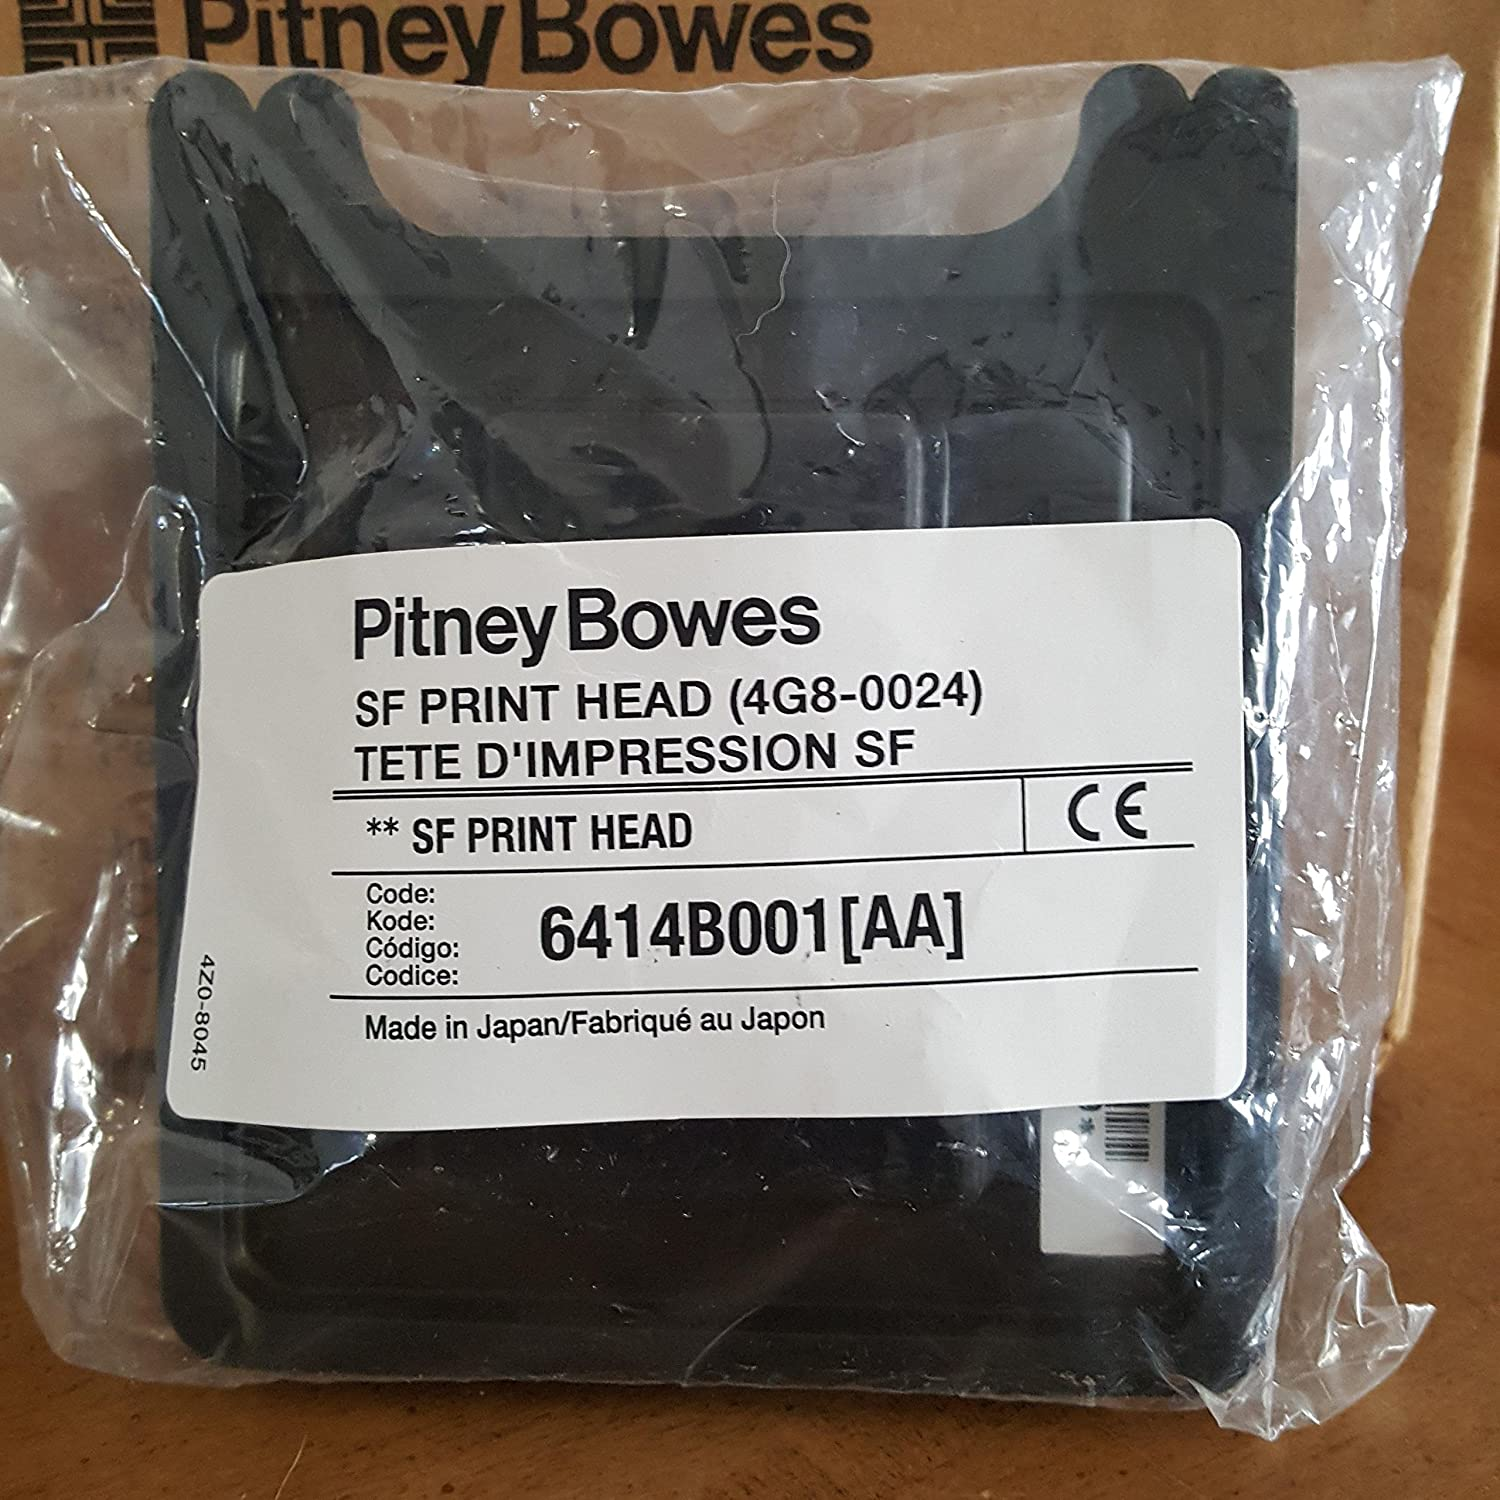 Genuine Pitney Bowes Print Head for the DM Series Postage Meters